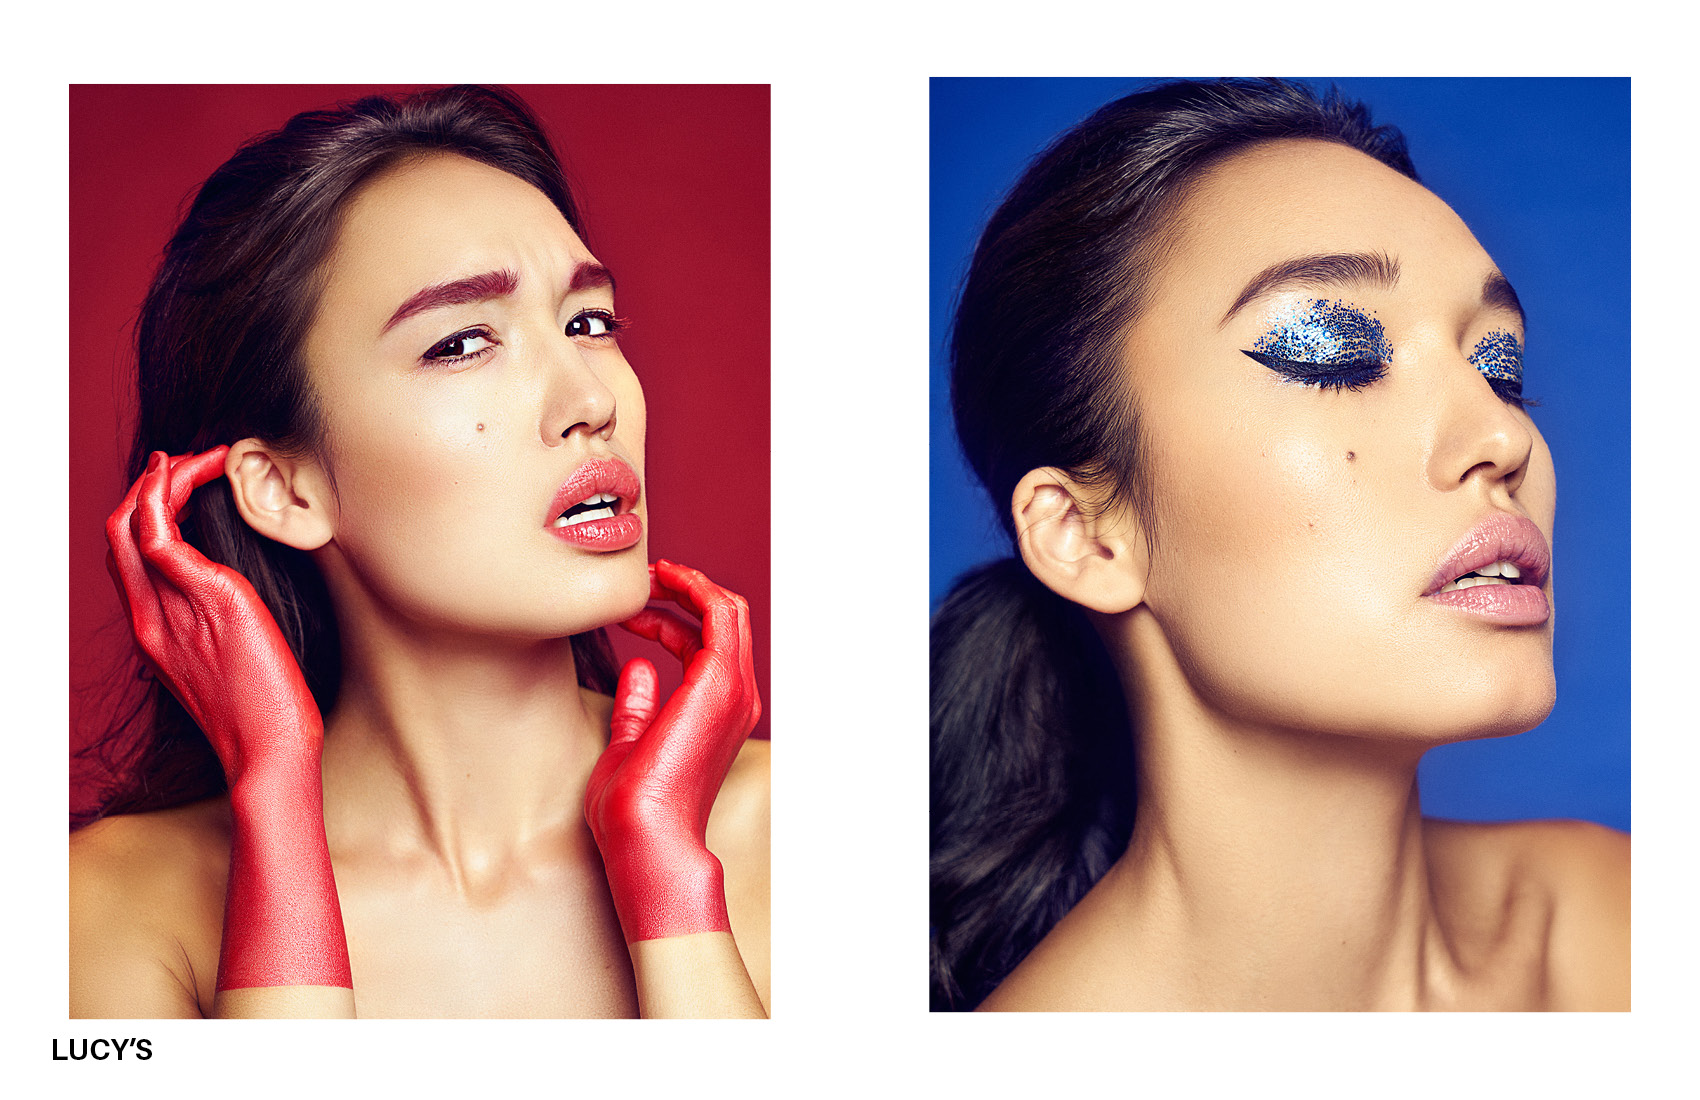 Janice for Lucy's by Christin Snyders